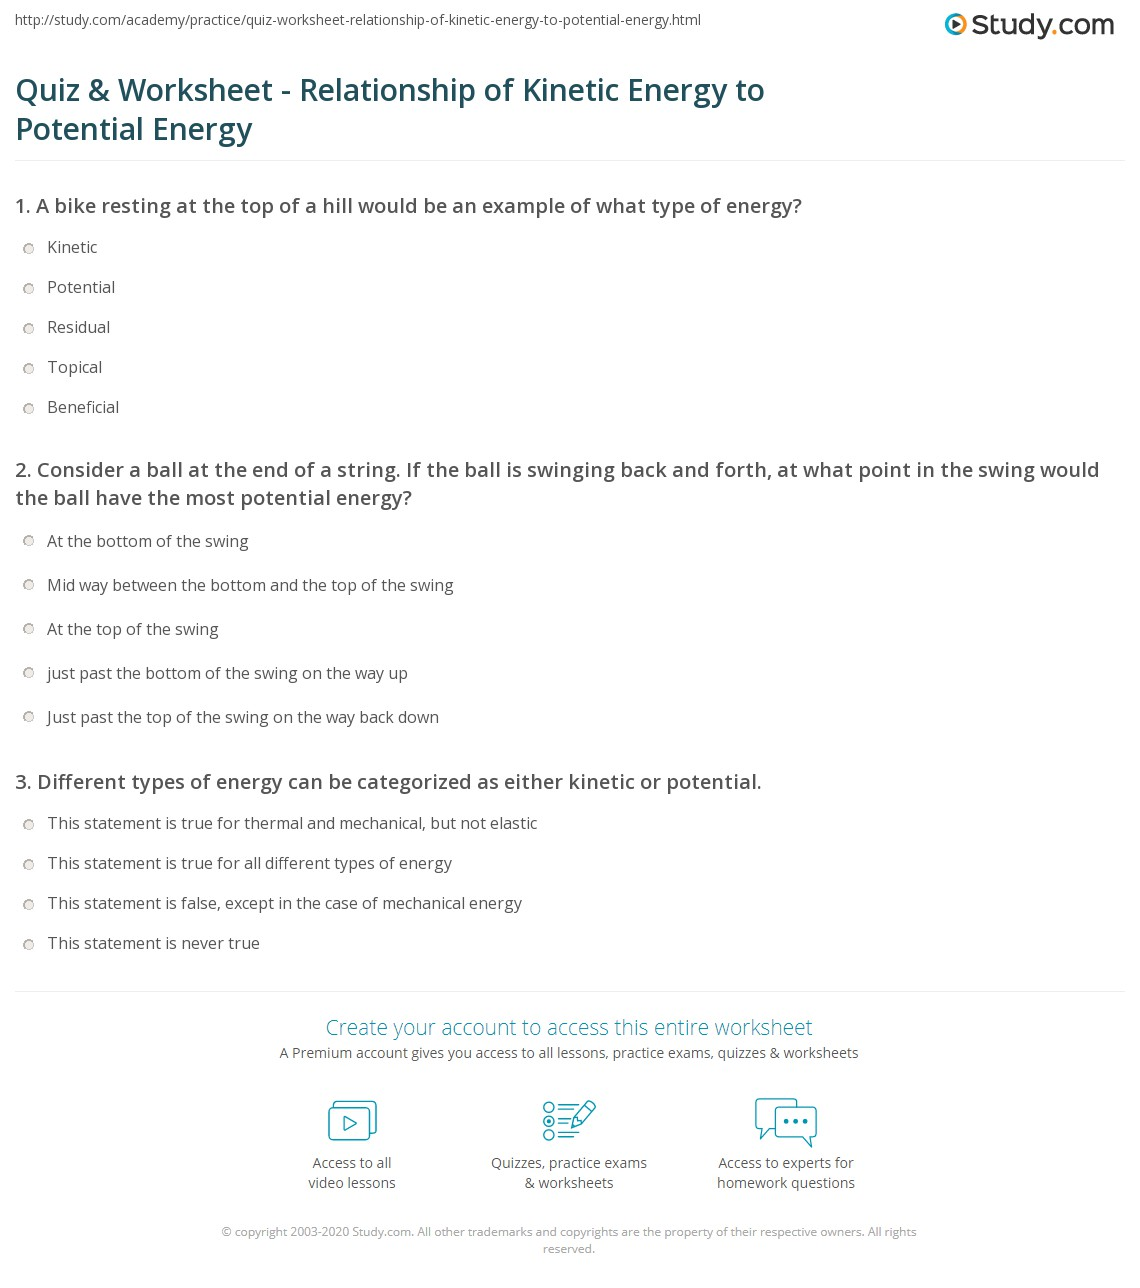 Quiz & Worksheet - Relationship of Kinetic Energy to Potential